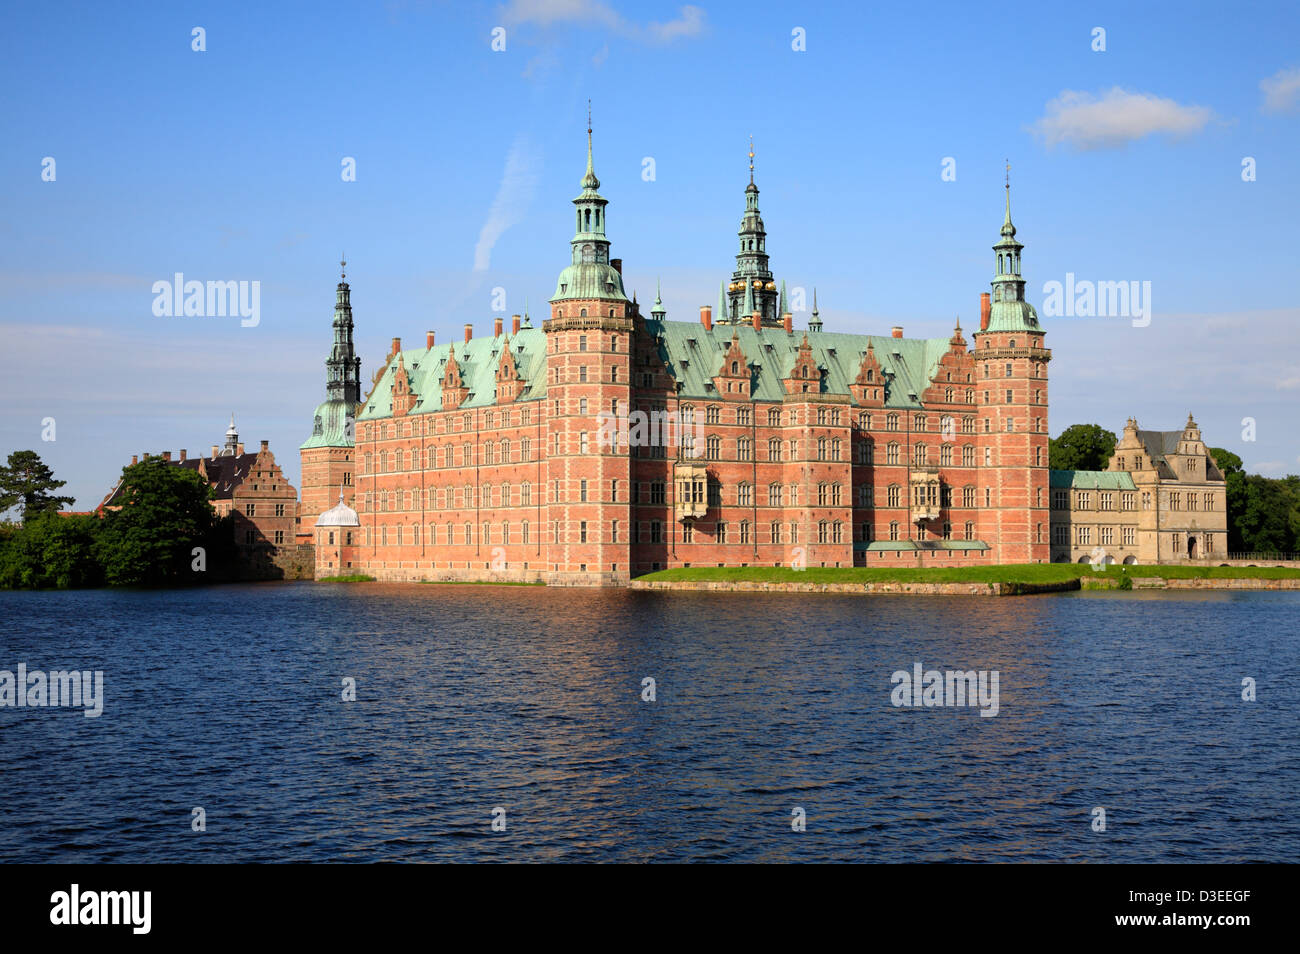 The Frederiksborg Castle in in Dutch Renaissance style in Hillerød (Hilleroed or Hillerod) near Copenhagen, - Stock Image